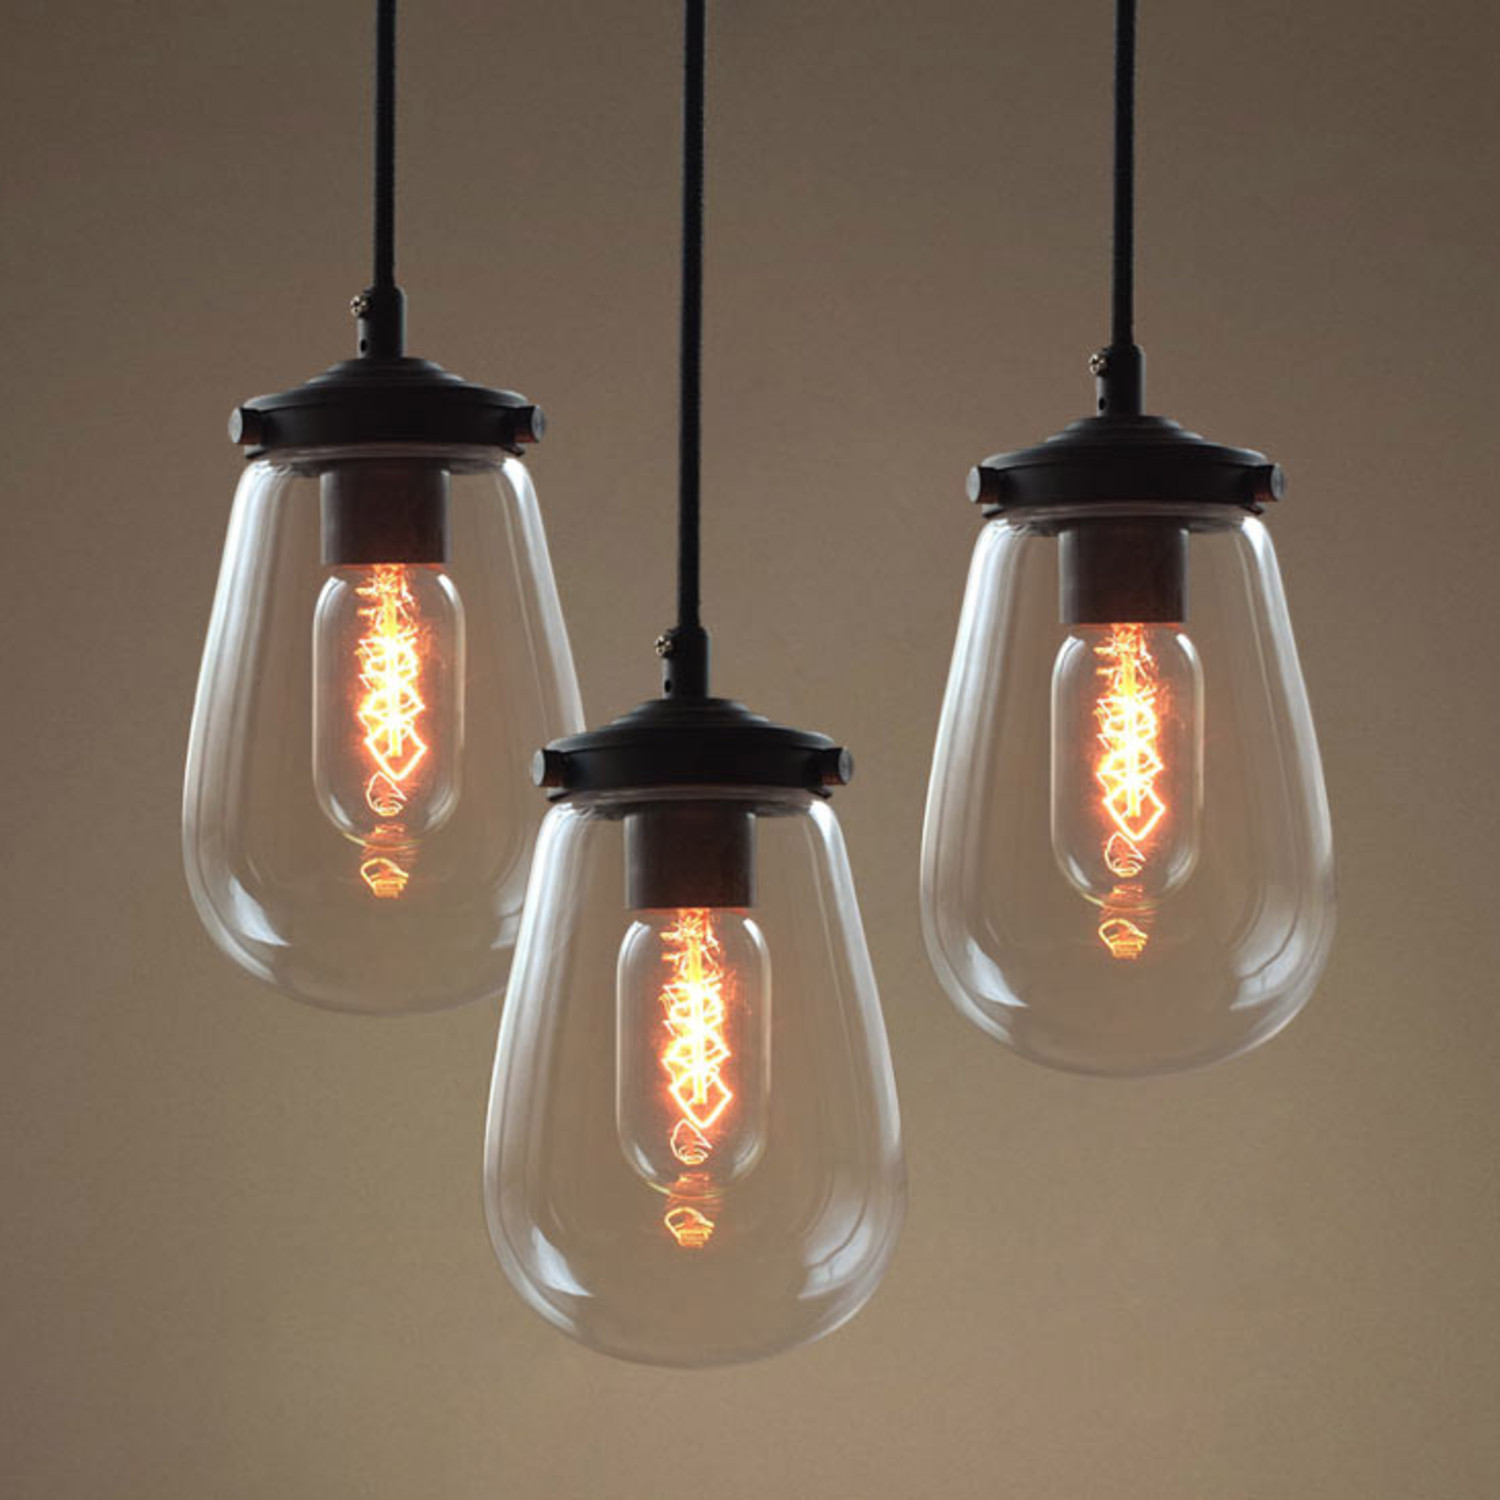 kitchen pendant lights images faucet filter system grape glass bubble lamp westmenlights touch of modern